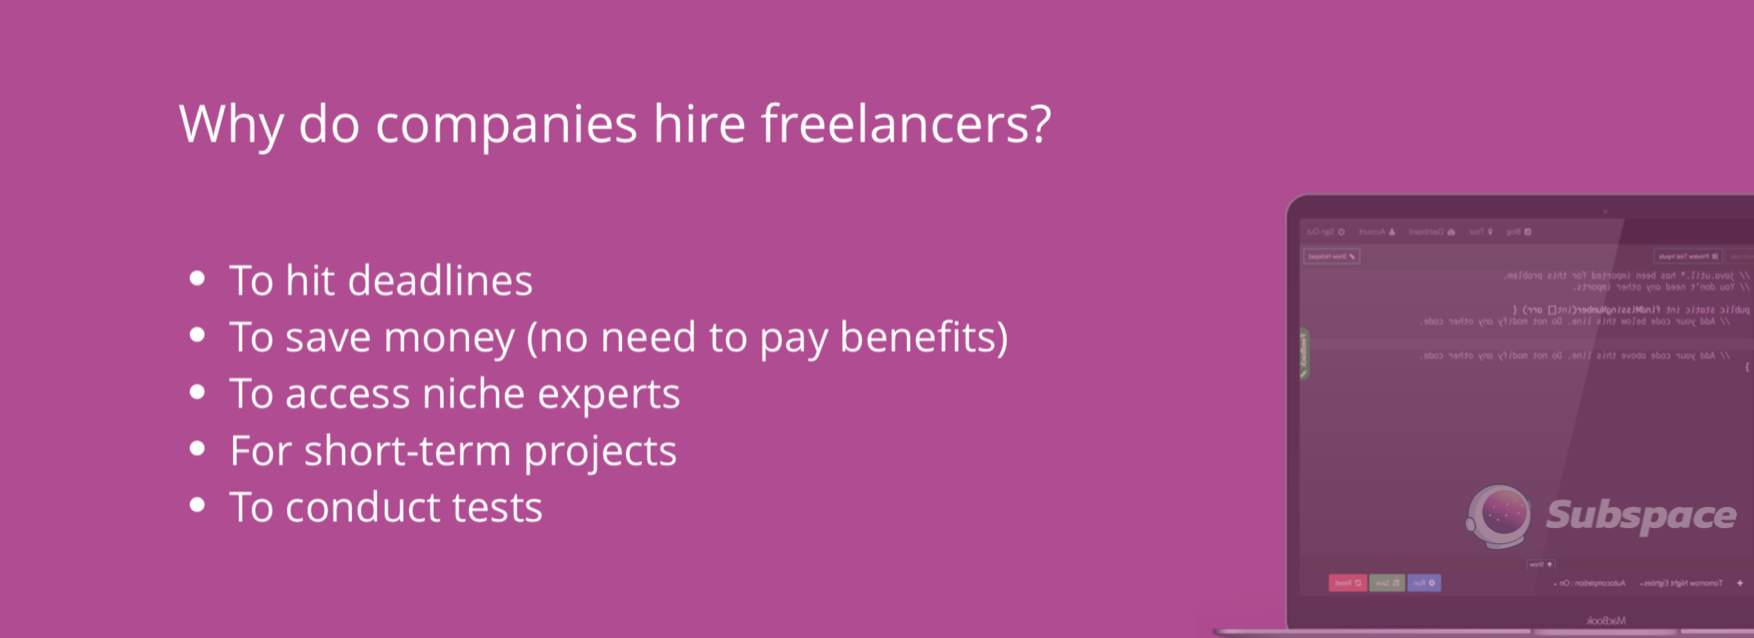 why companies hire freelance software developers